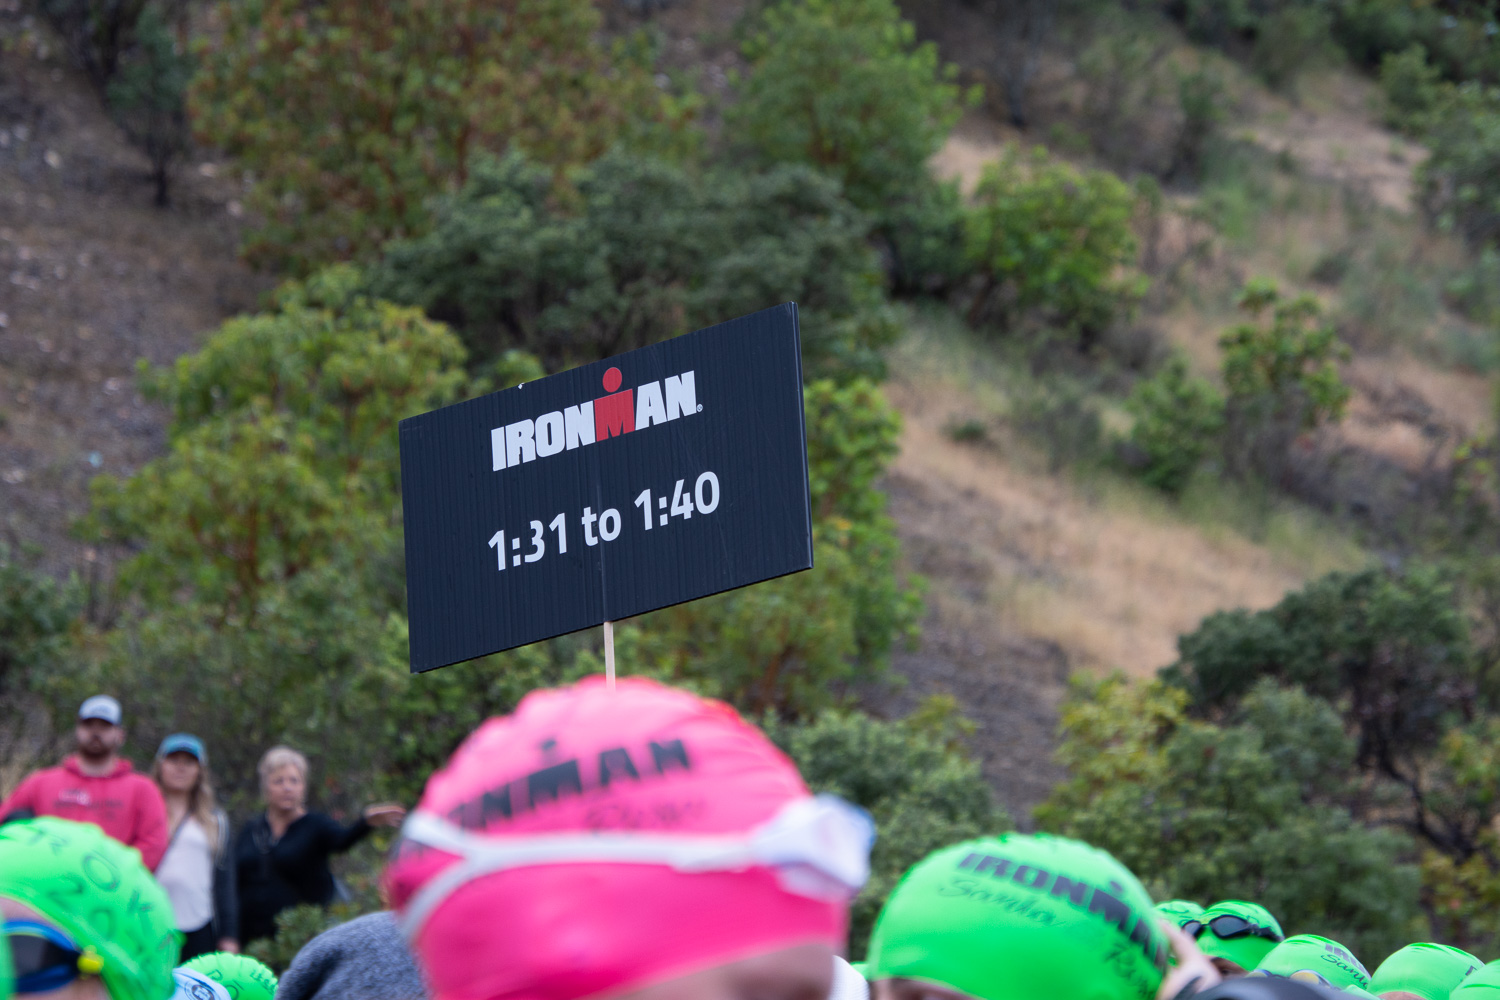 Ironman swim 2019 in Santa Rosa